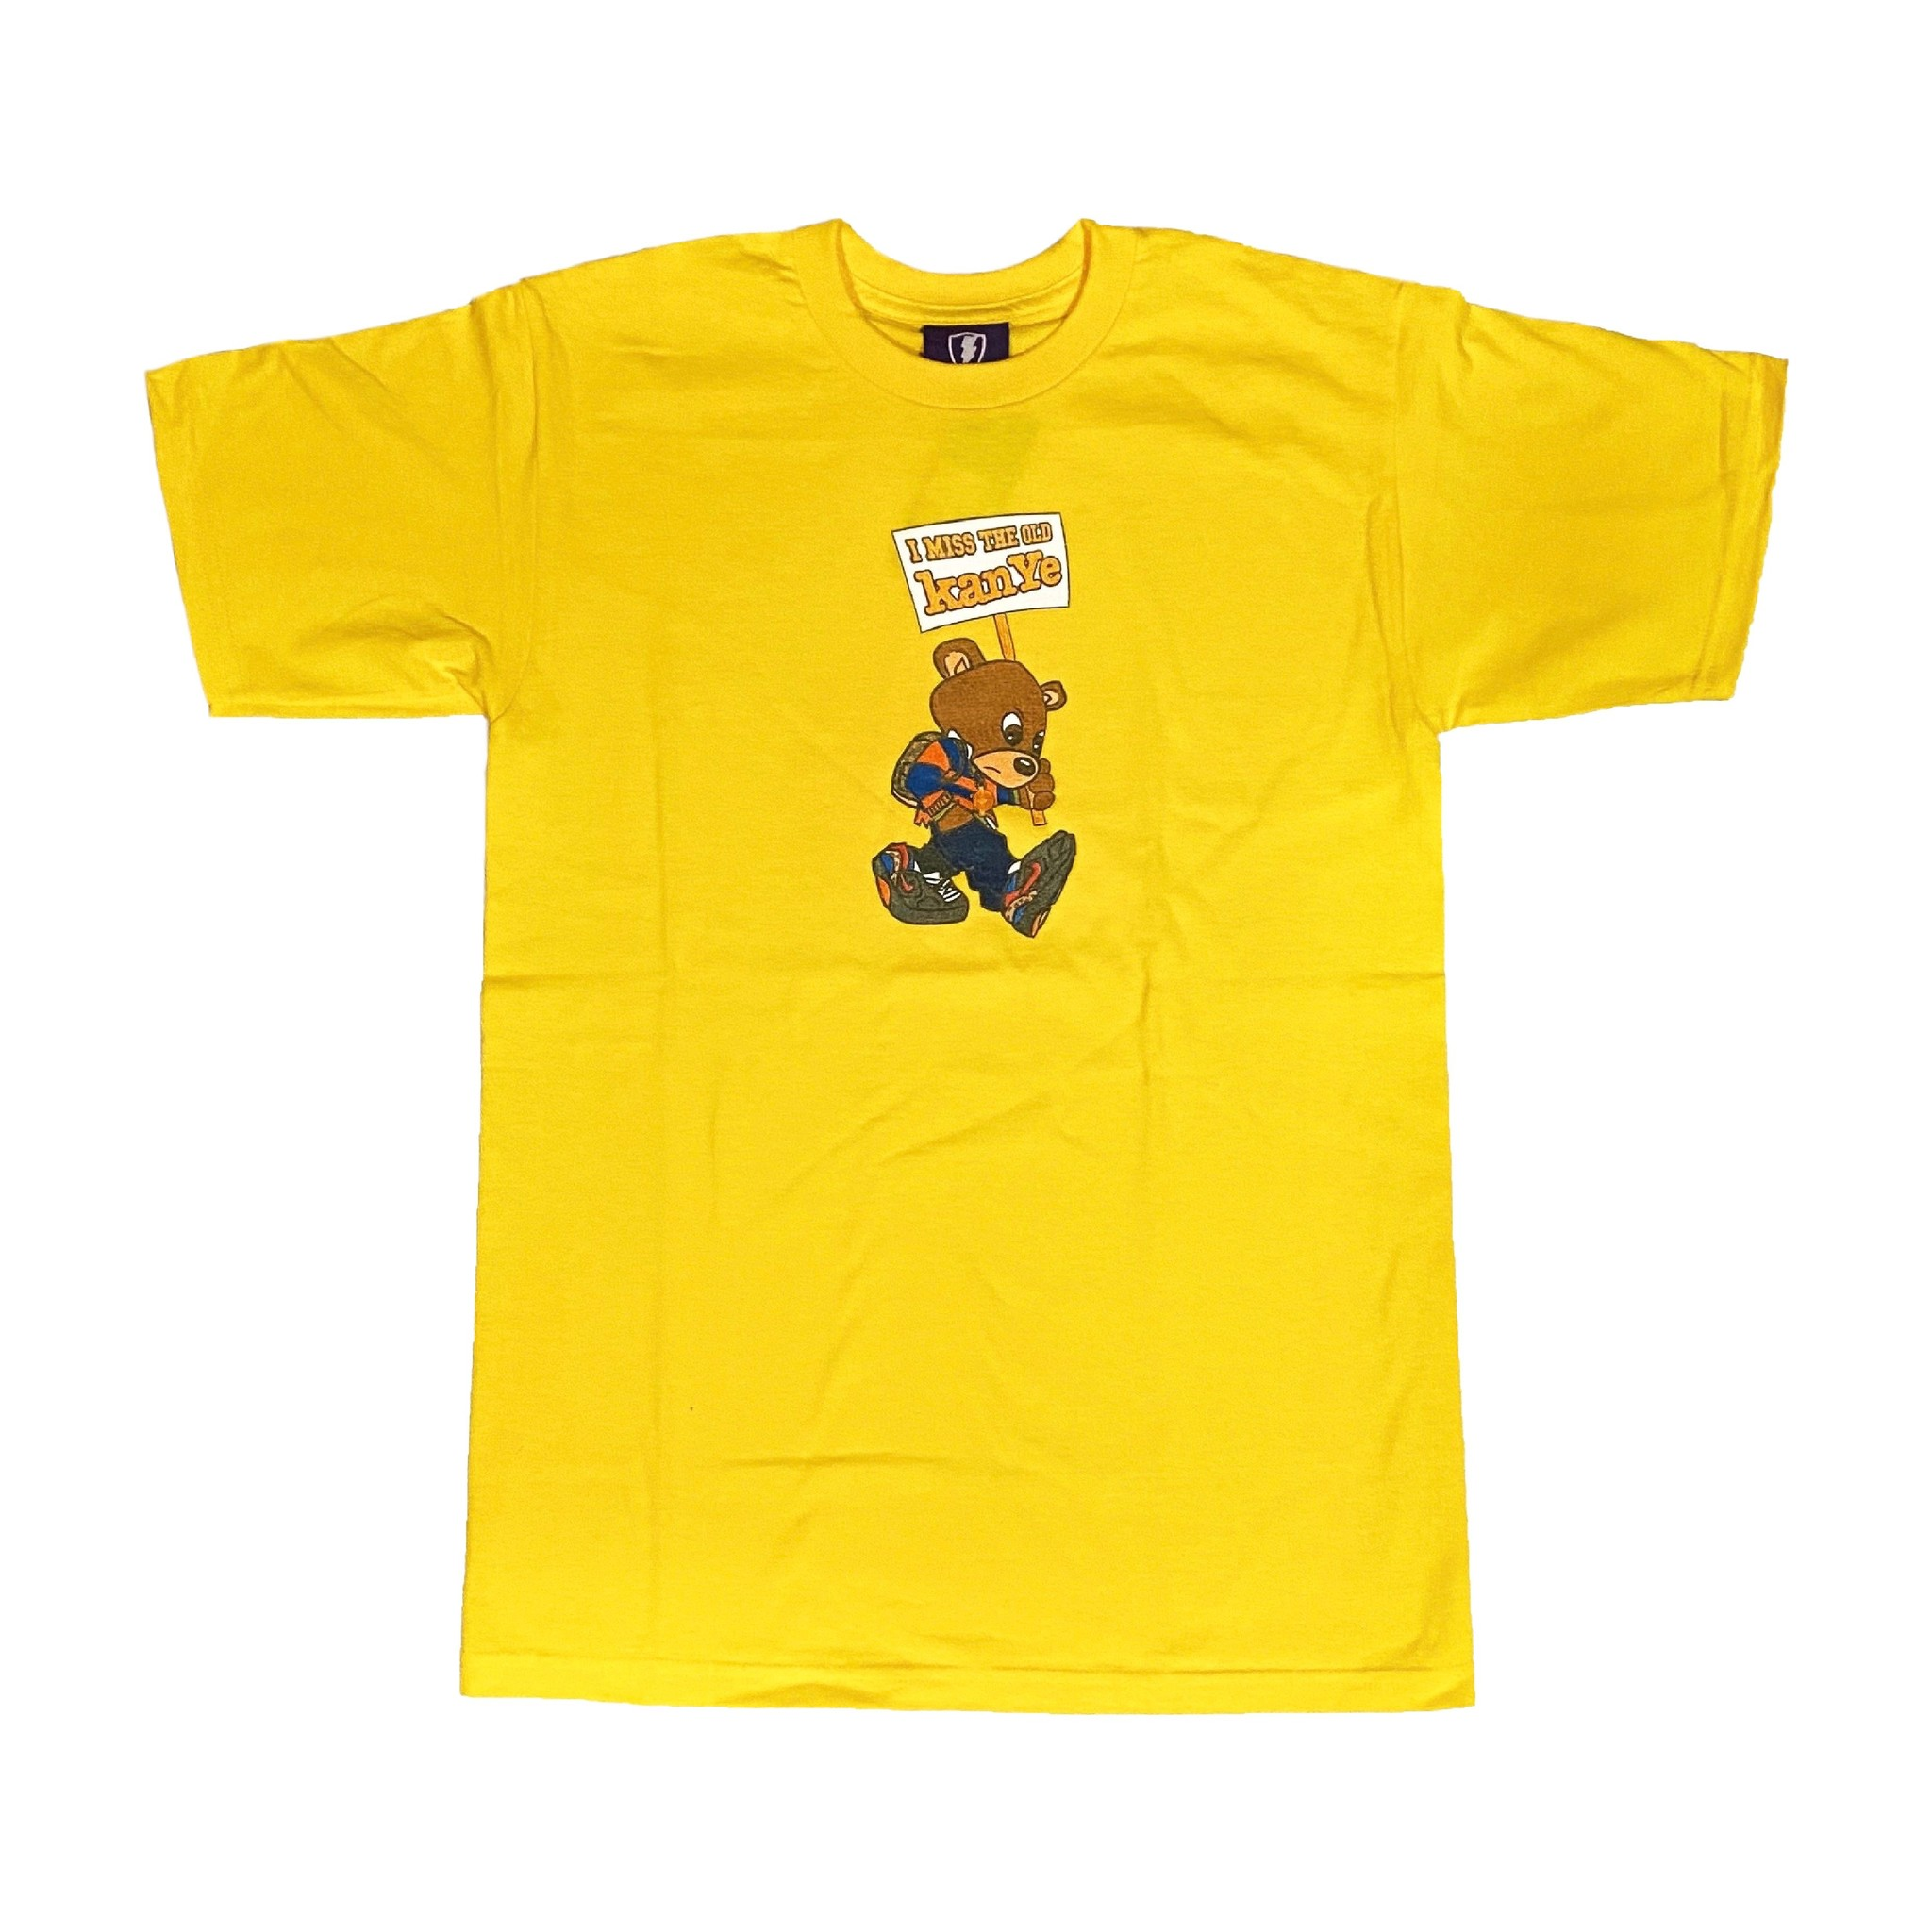 Jugrnaut Jugrnaut I miss the old Kanye Yellow